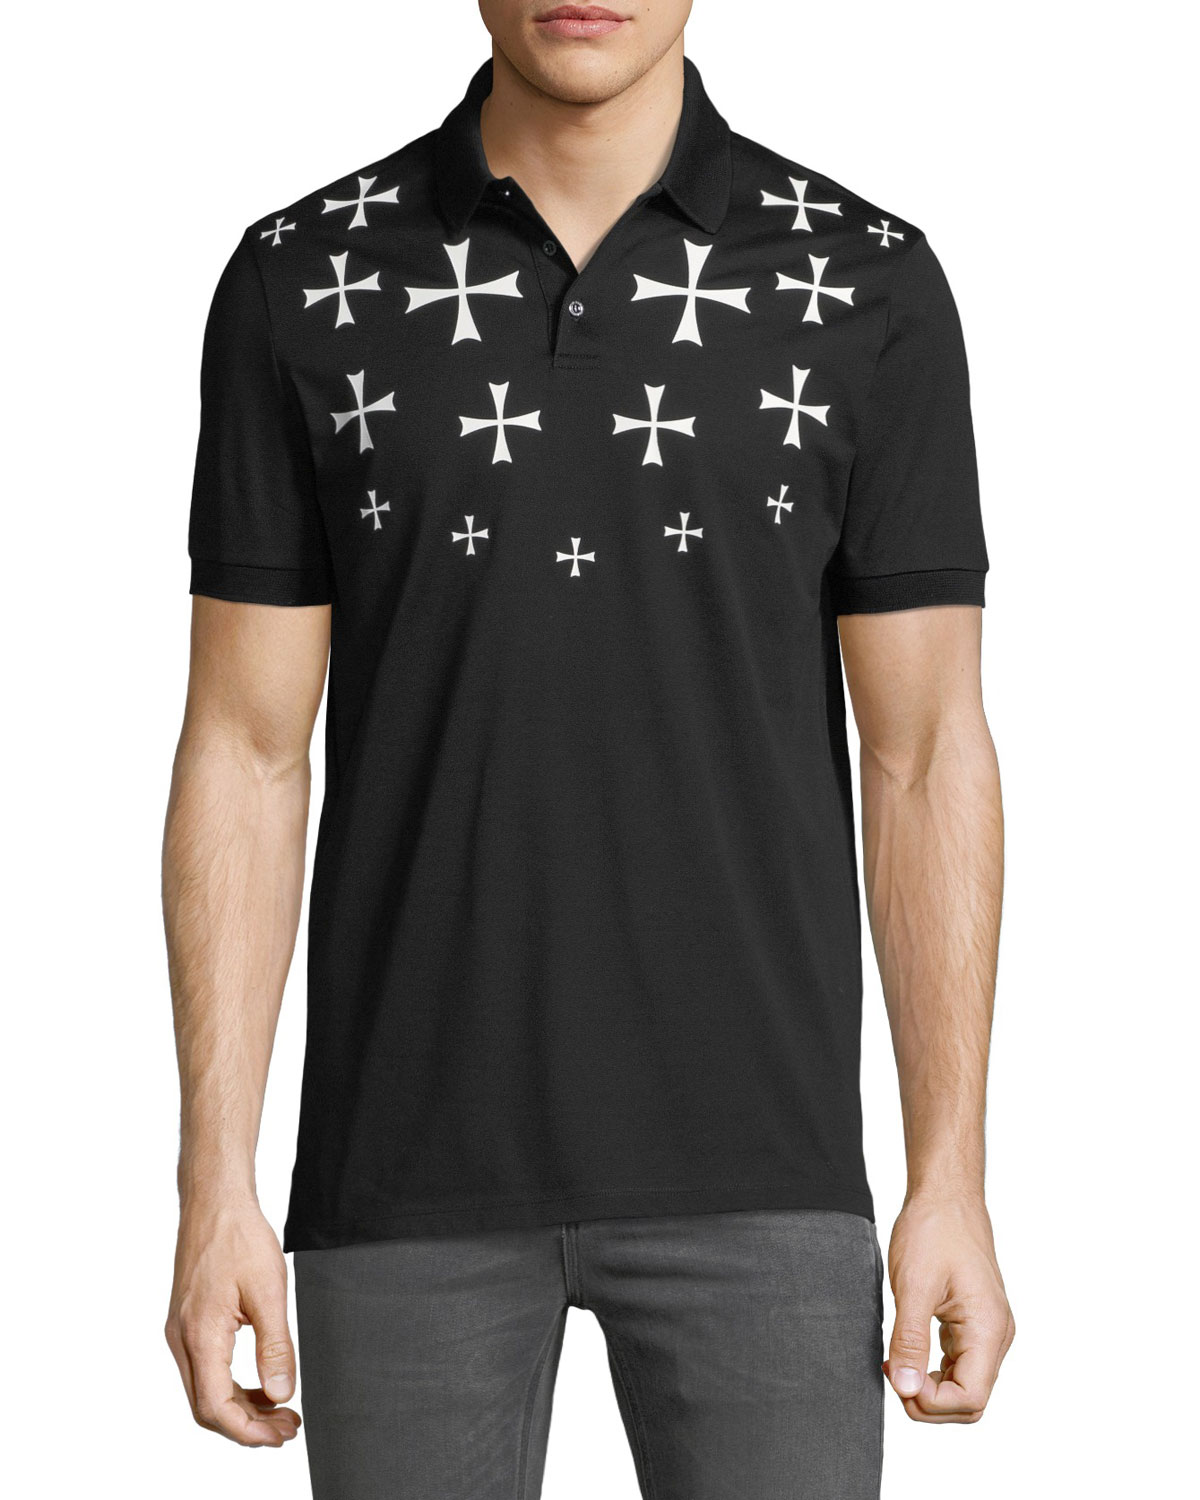 Men's Fair Isle Military Star Polo Shirt